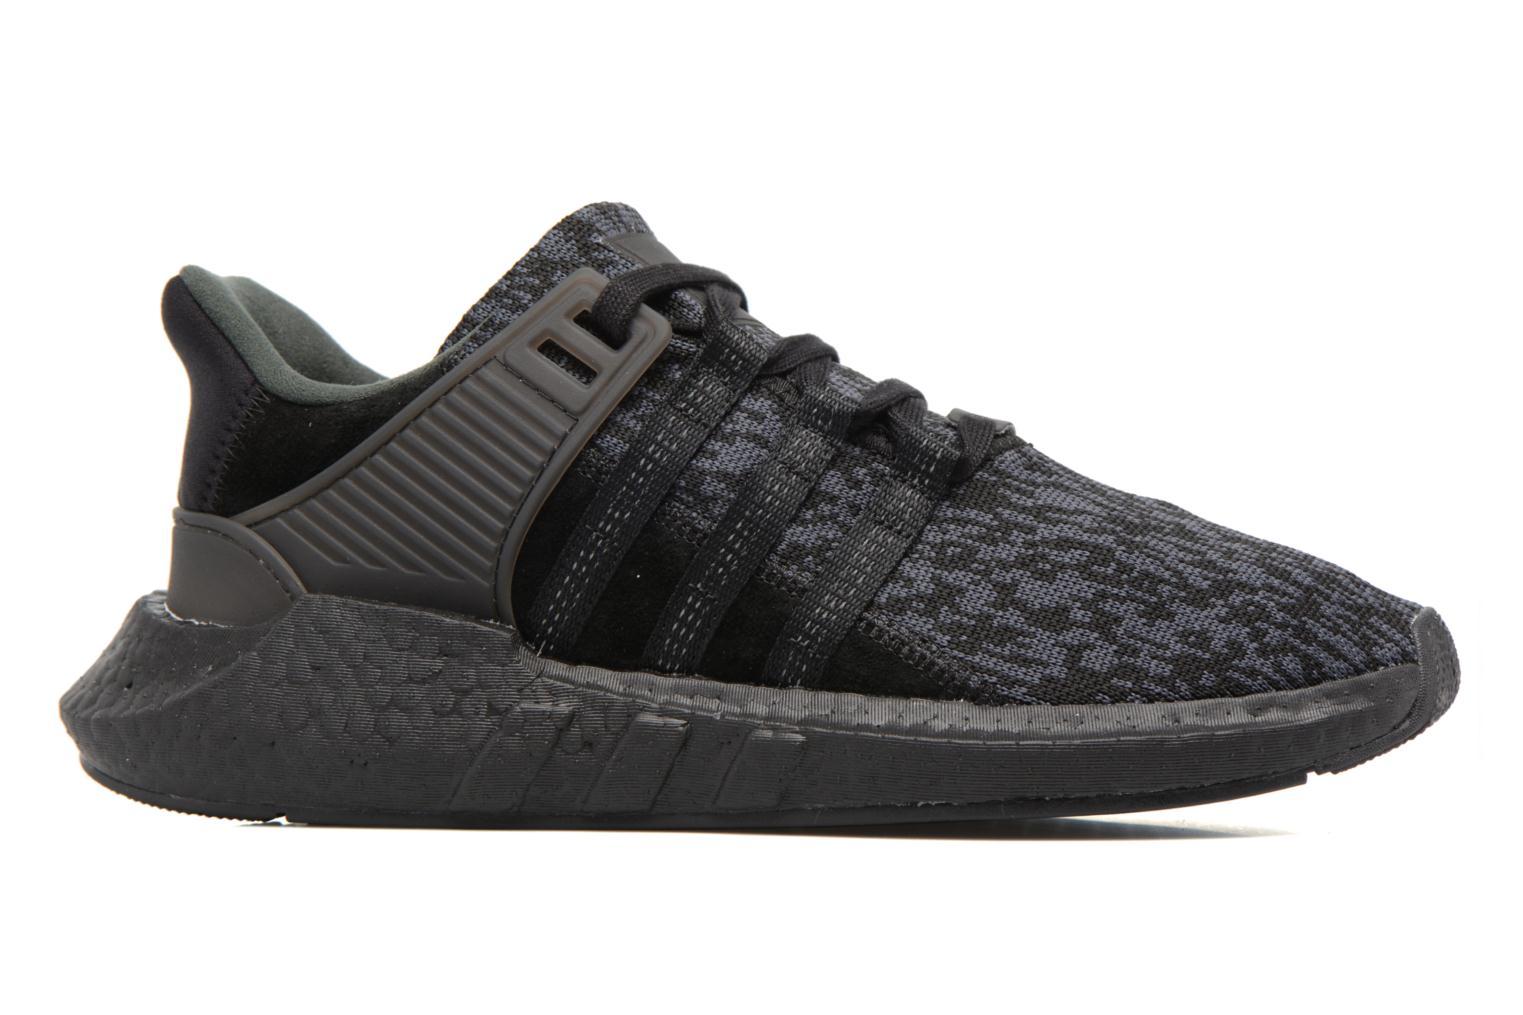 Baskets Adidas Originals Eqt Support 93/17 Noir vue derrière